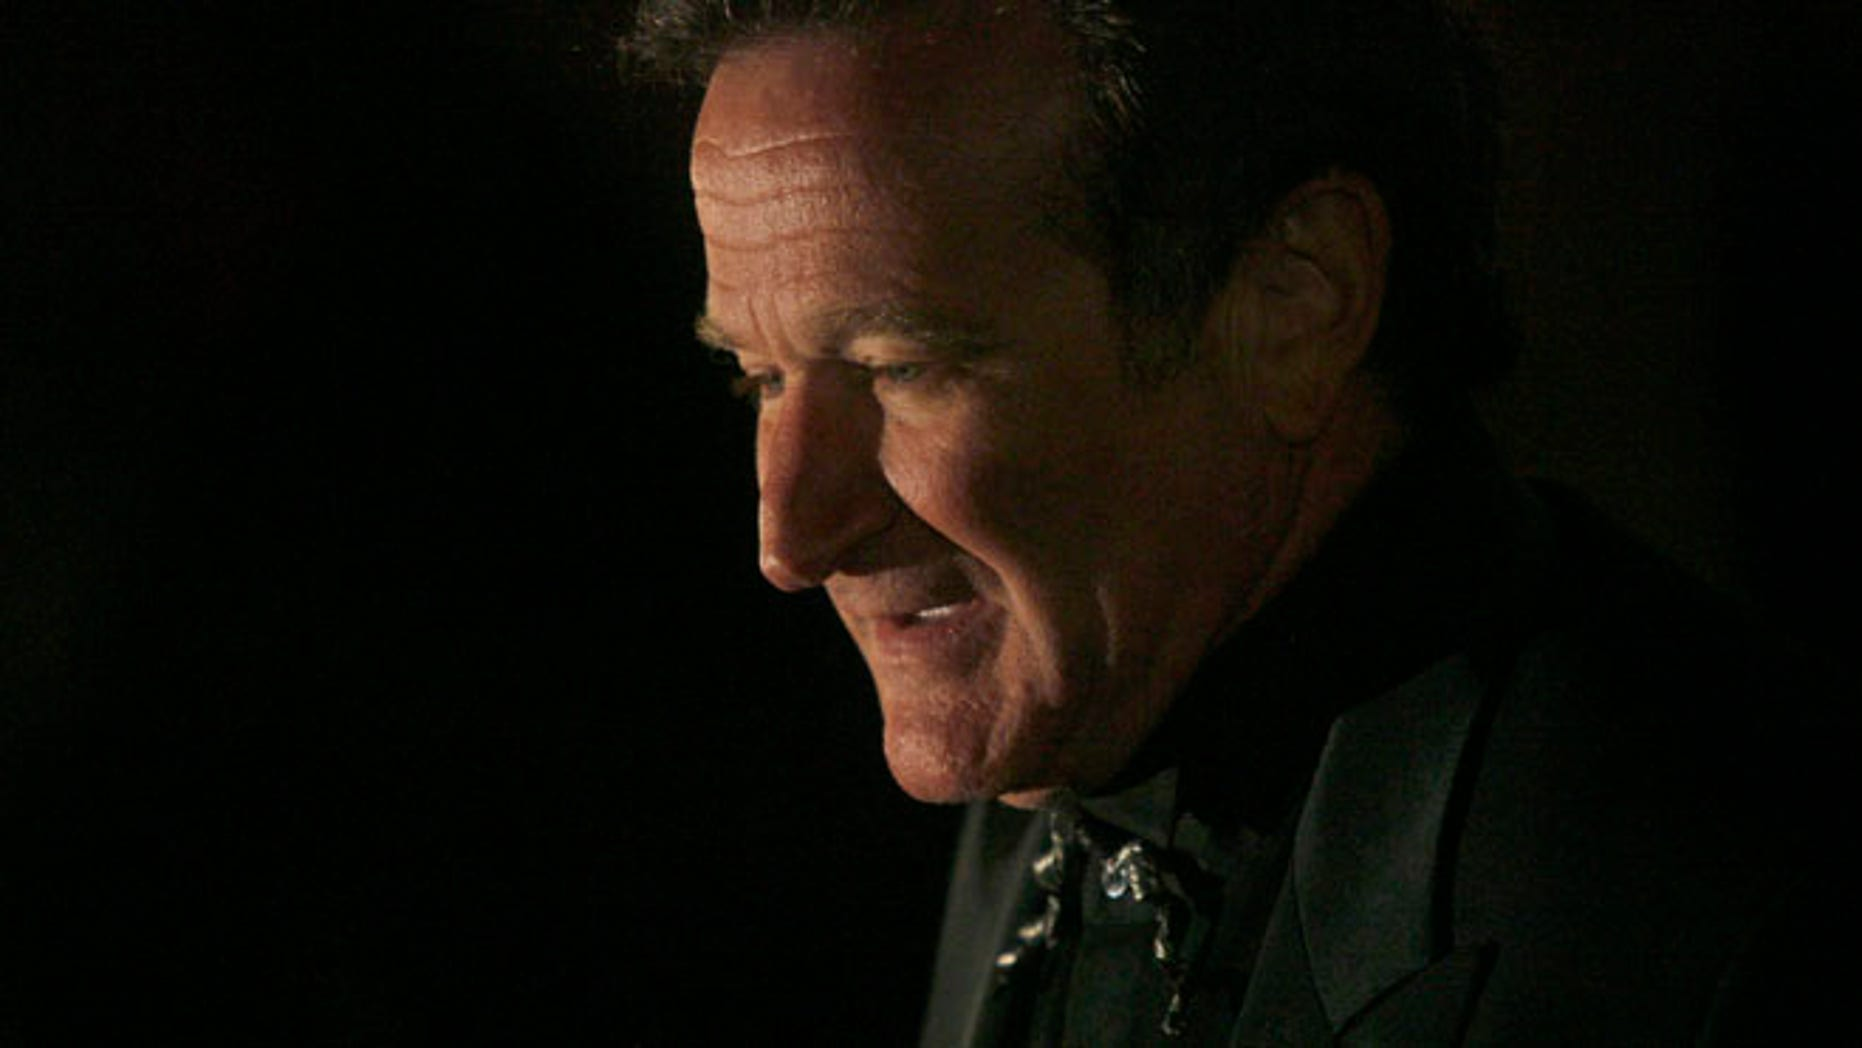 Mar. 24, 2007: Actor Robin Williams arrives at singer-songwriter Elton John's 60th birthday party in New York. (Reuters)